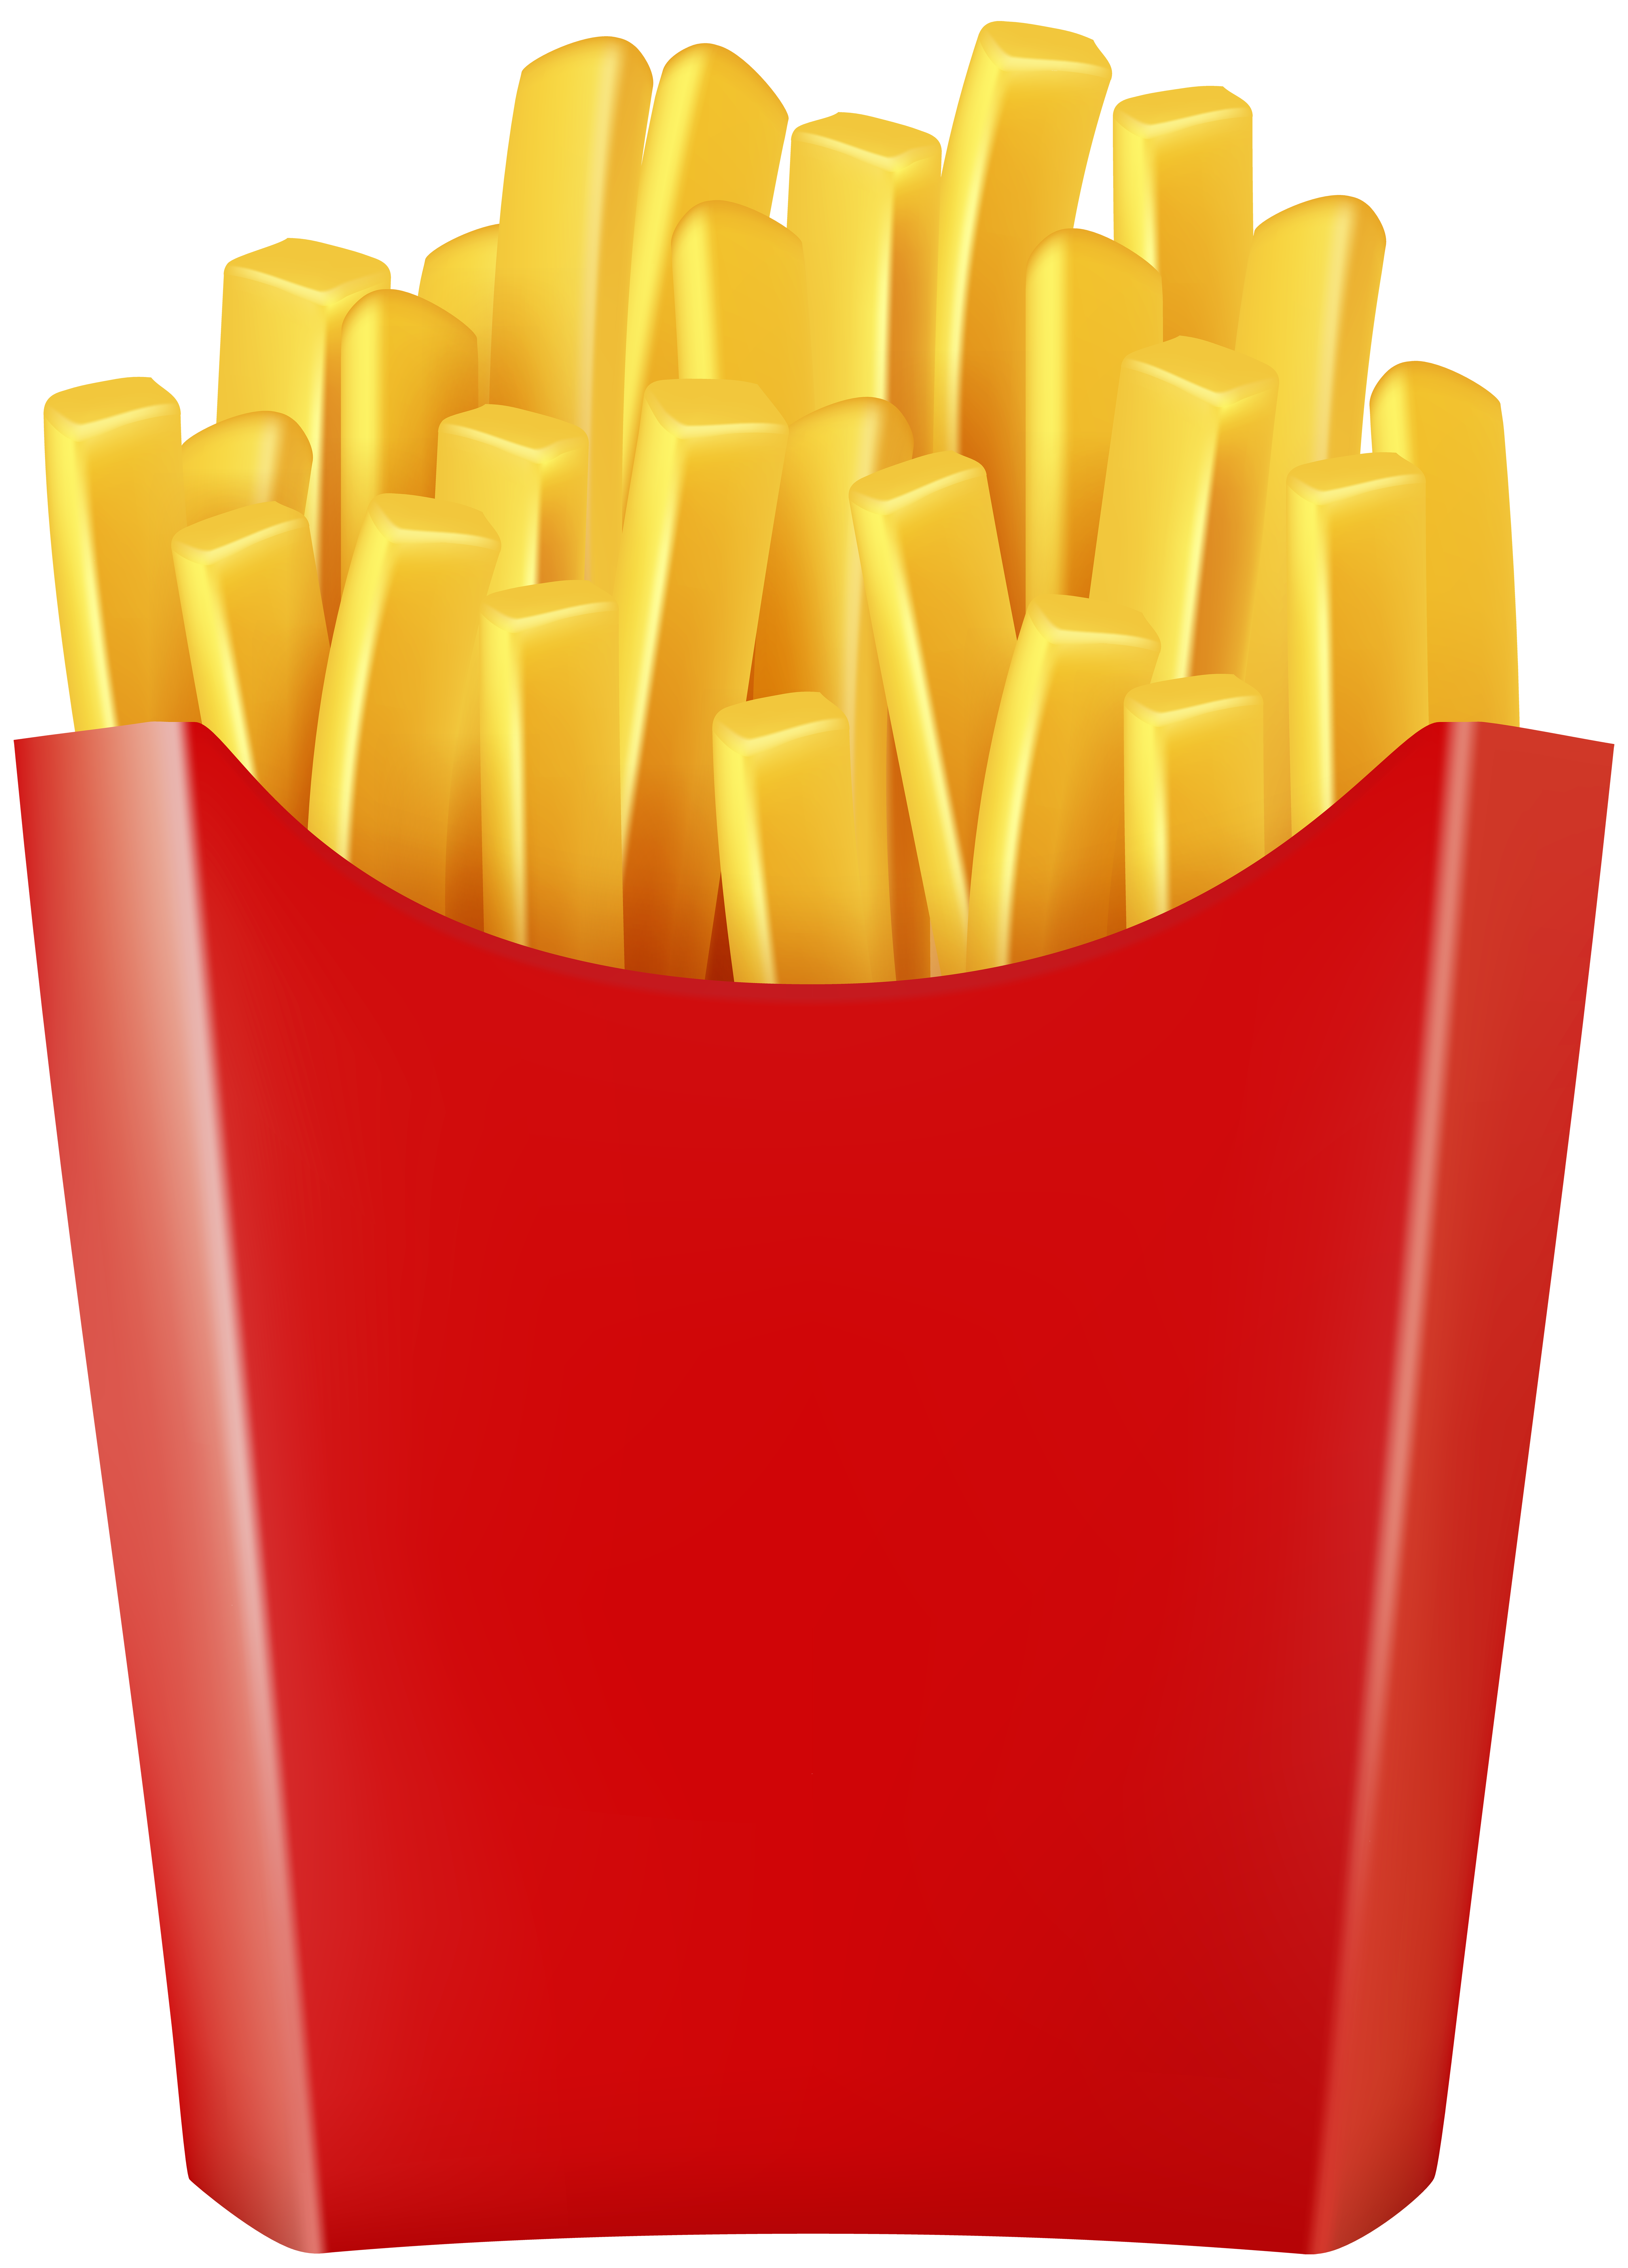 French Fries Transparent Image Gallery Yopriceville High Quality Images And Transparent Png Free Clipart Fritas Batata Frita Ideias